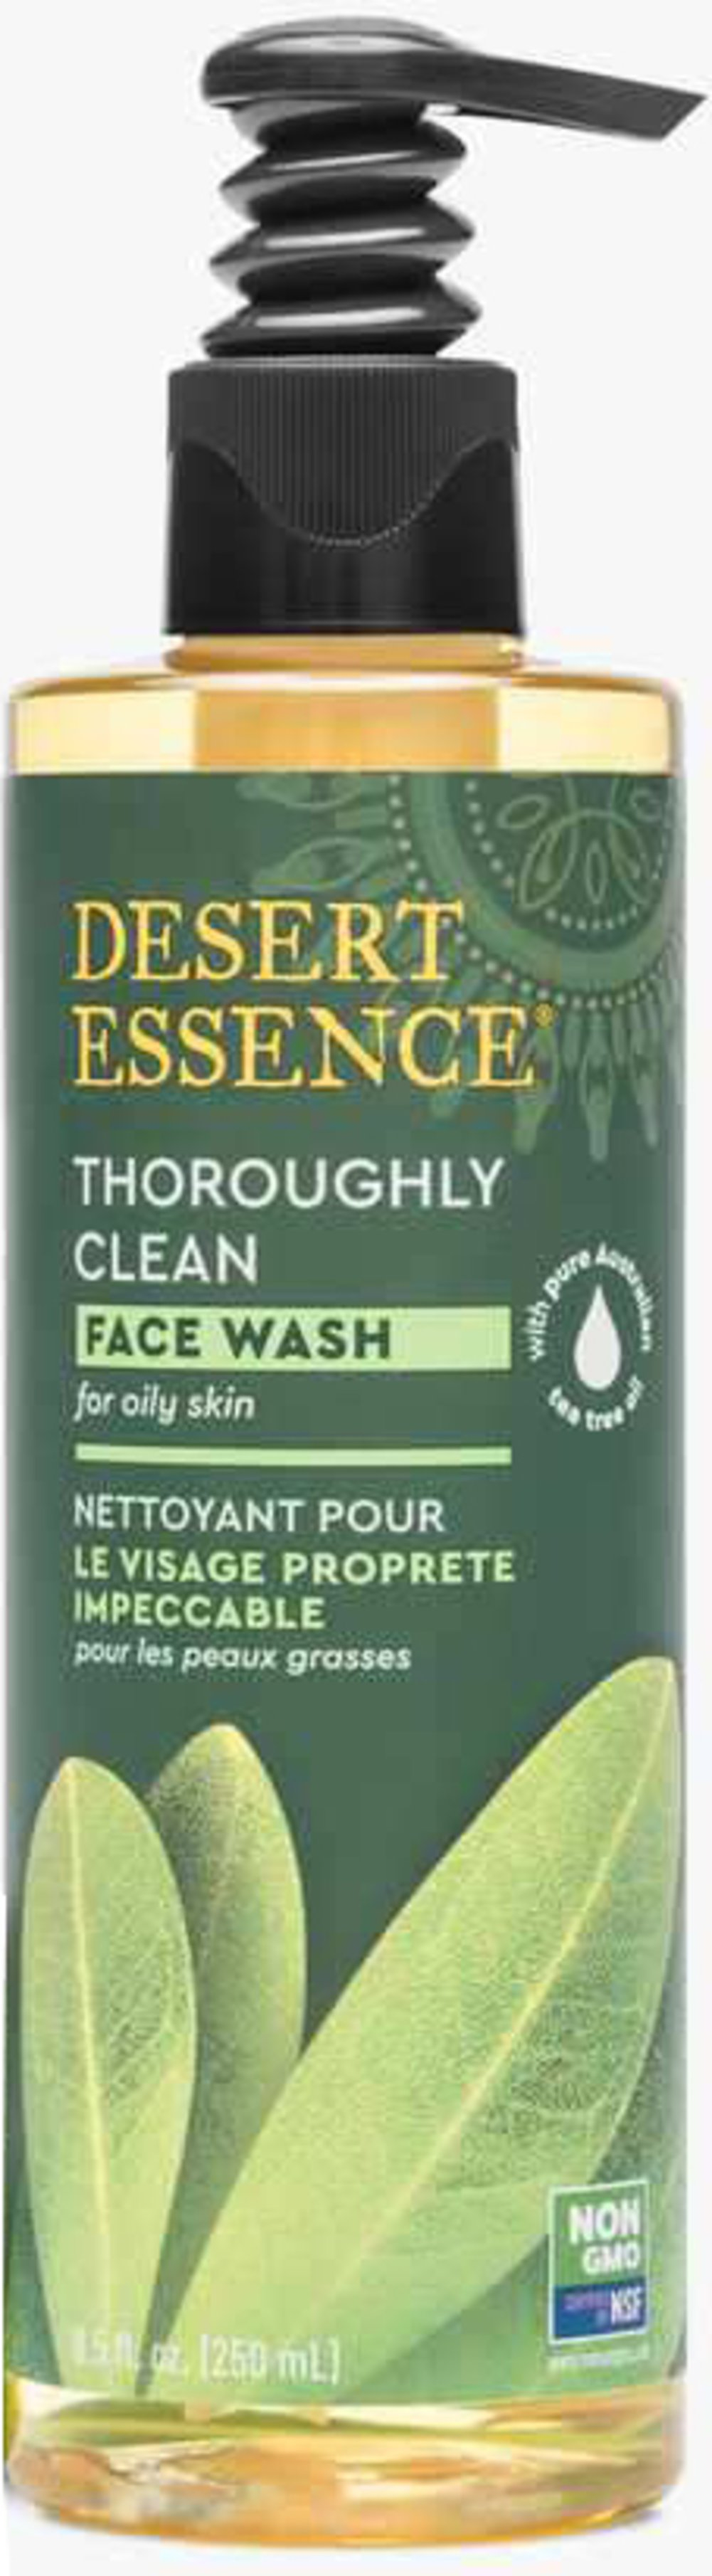 Tea Tree Oil Thoroughly Clean Face Wash for Oily/Combination Skin <p><strong>From the Manufacturer's Label: </strong></p><p>Desert Essence Thoroughly Clean Face Wash is a gentle cleansing solution that leave your skin feeling clean and silky. This unique face wash contains natural organic Tea Tree Oil. Included  also are extracts of Goldenseal, Hawaiian White Ginger, and the essential oil of Chamomile.  </p><p>Mineral rich Bladderwrack, harvested fro